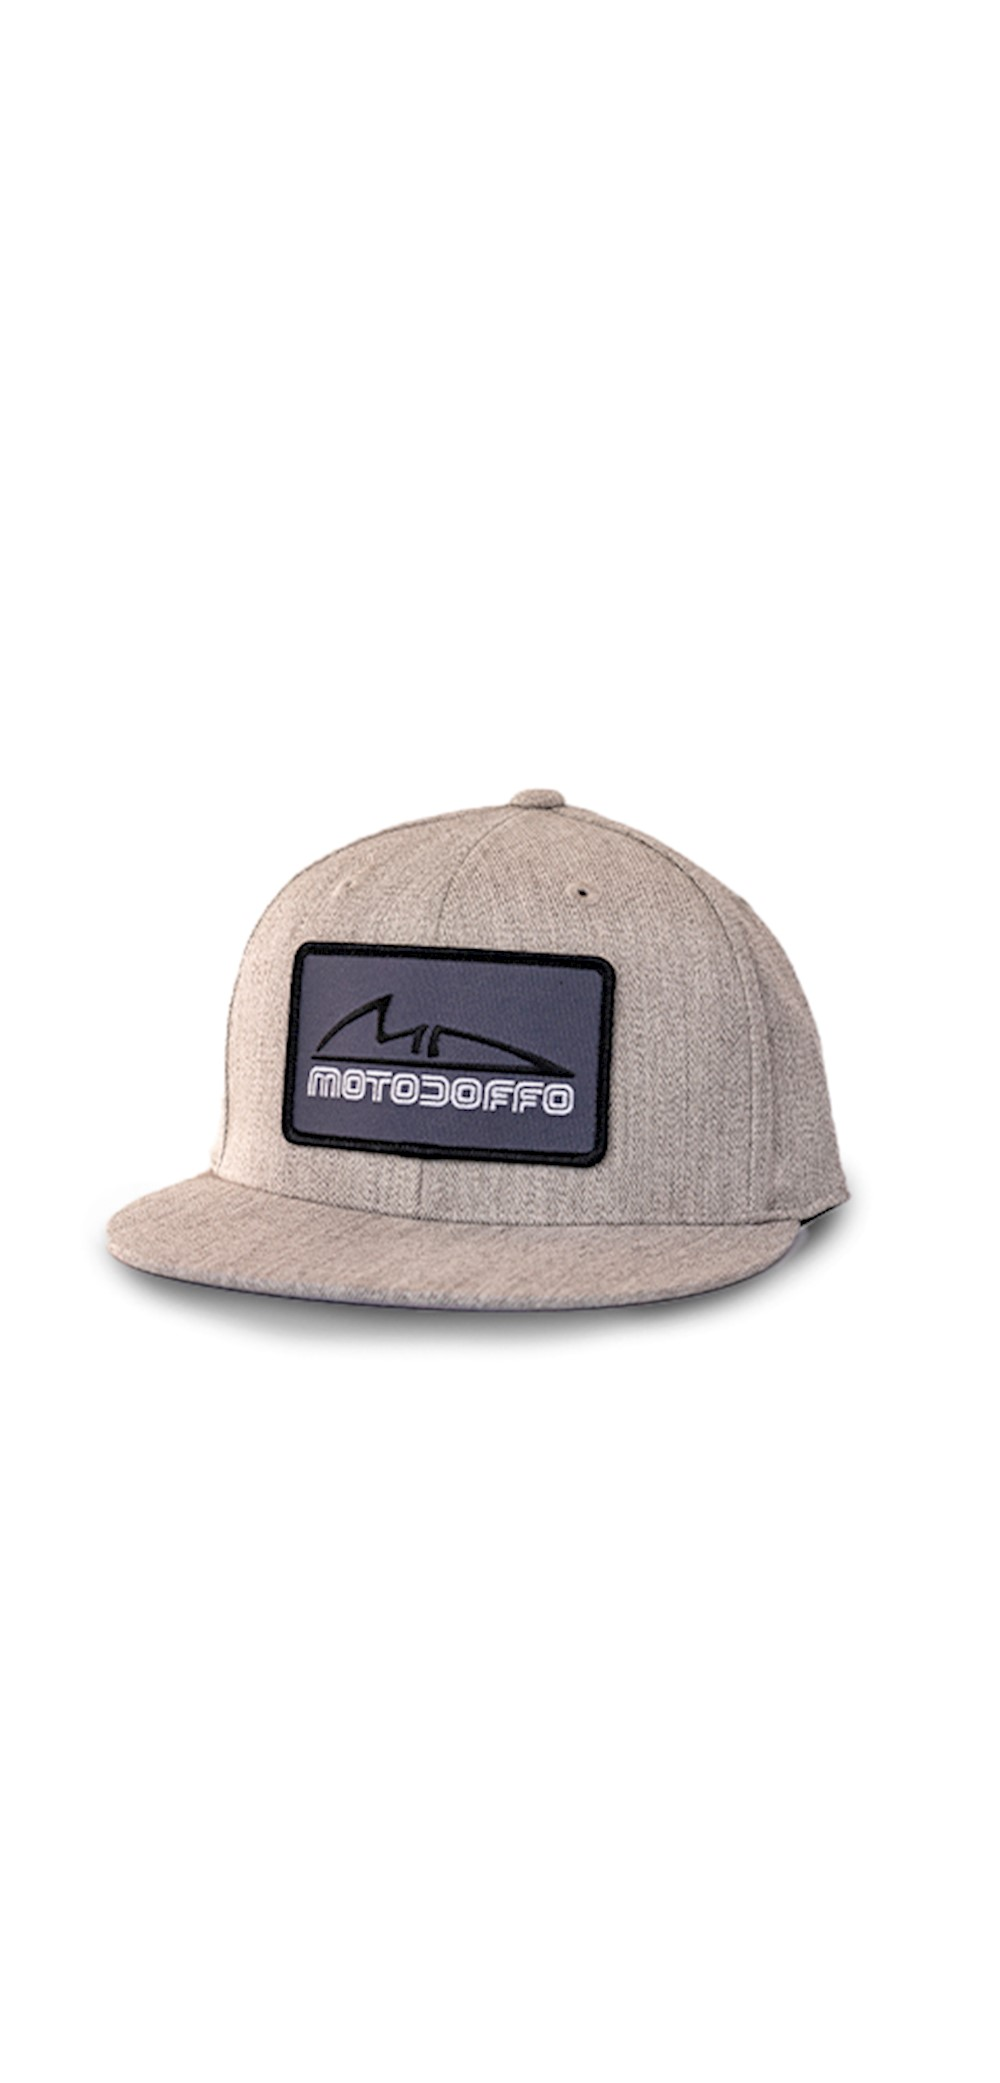 MotoDoffo Heather Fitted Hat THUMBNAIL